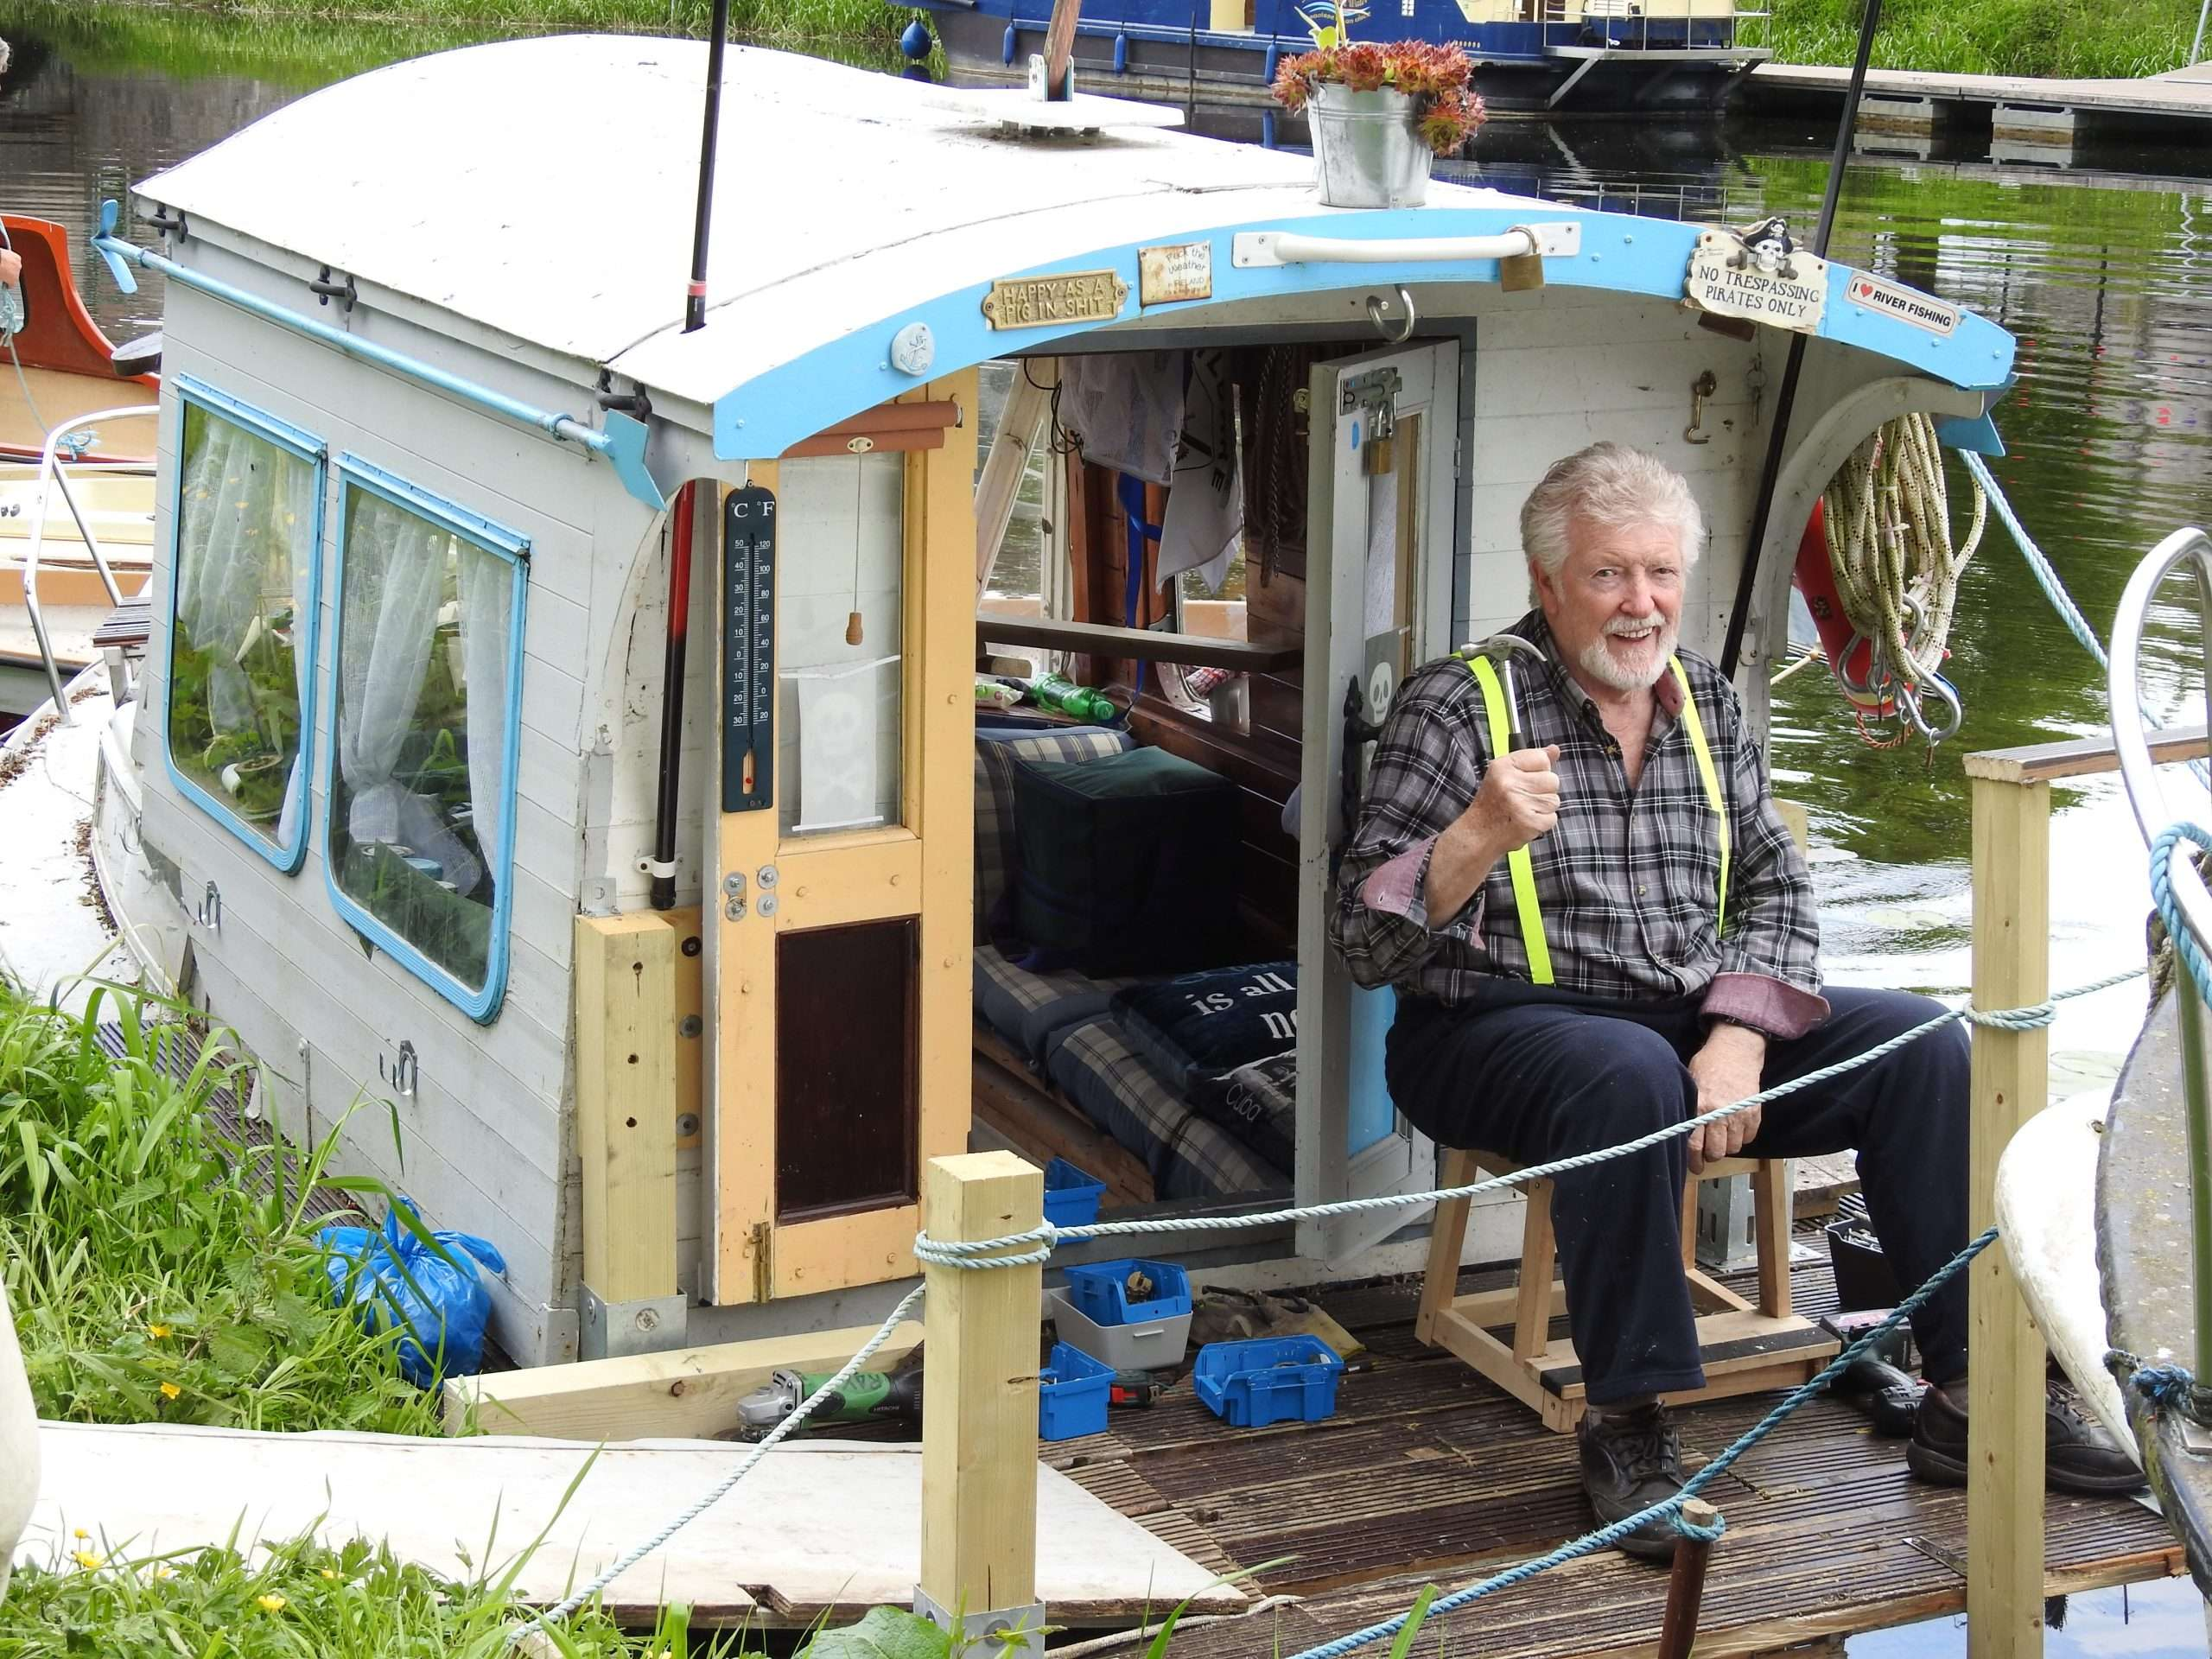 Retired Ray Byrne sitting at cabin door of boat